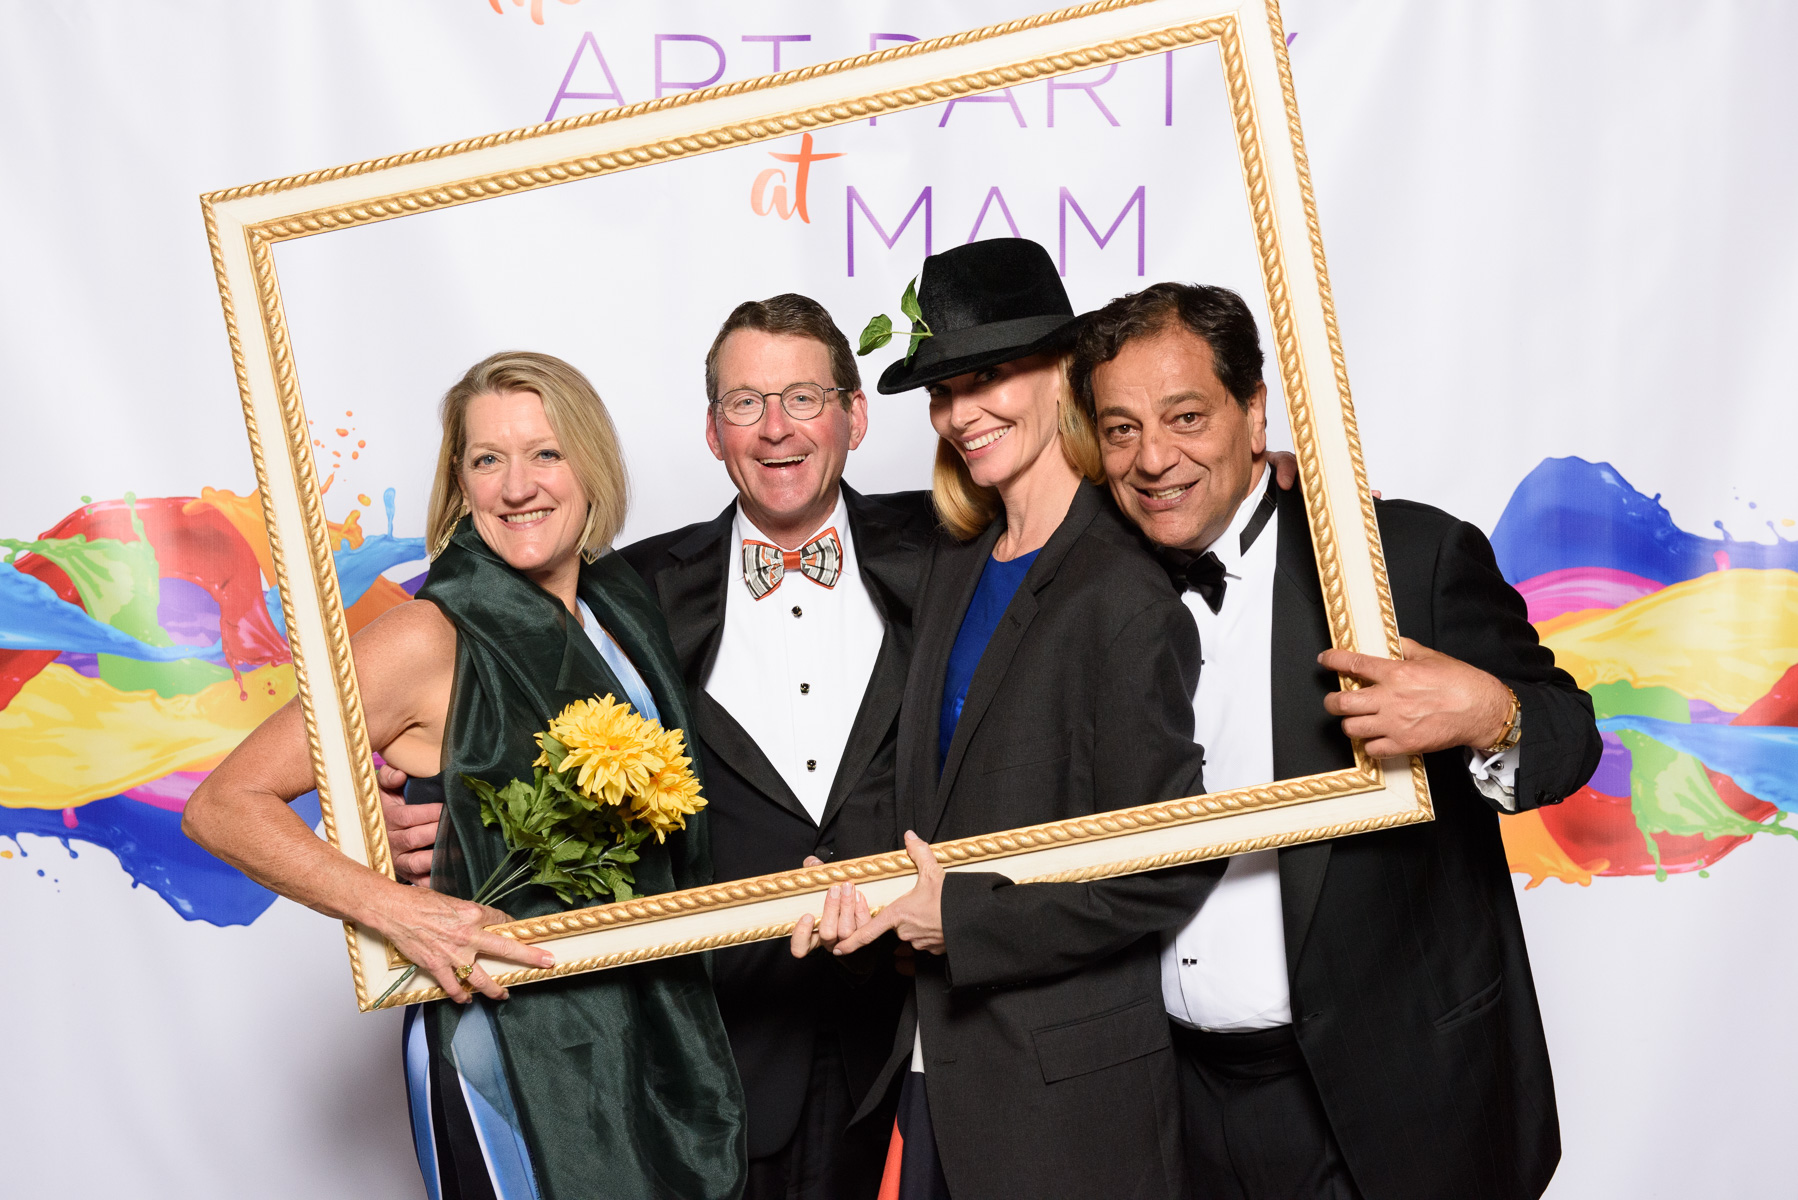 Four Patrons attending the Art Party pose in front of a banner with an empty picture frame